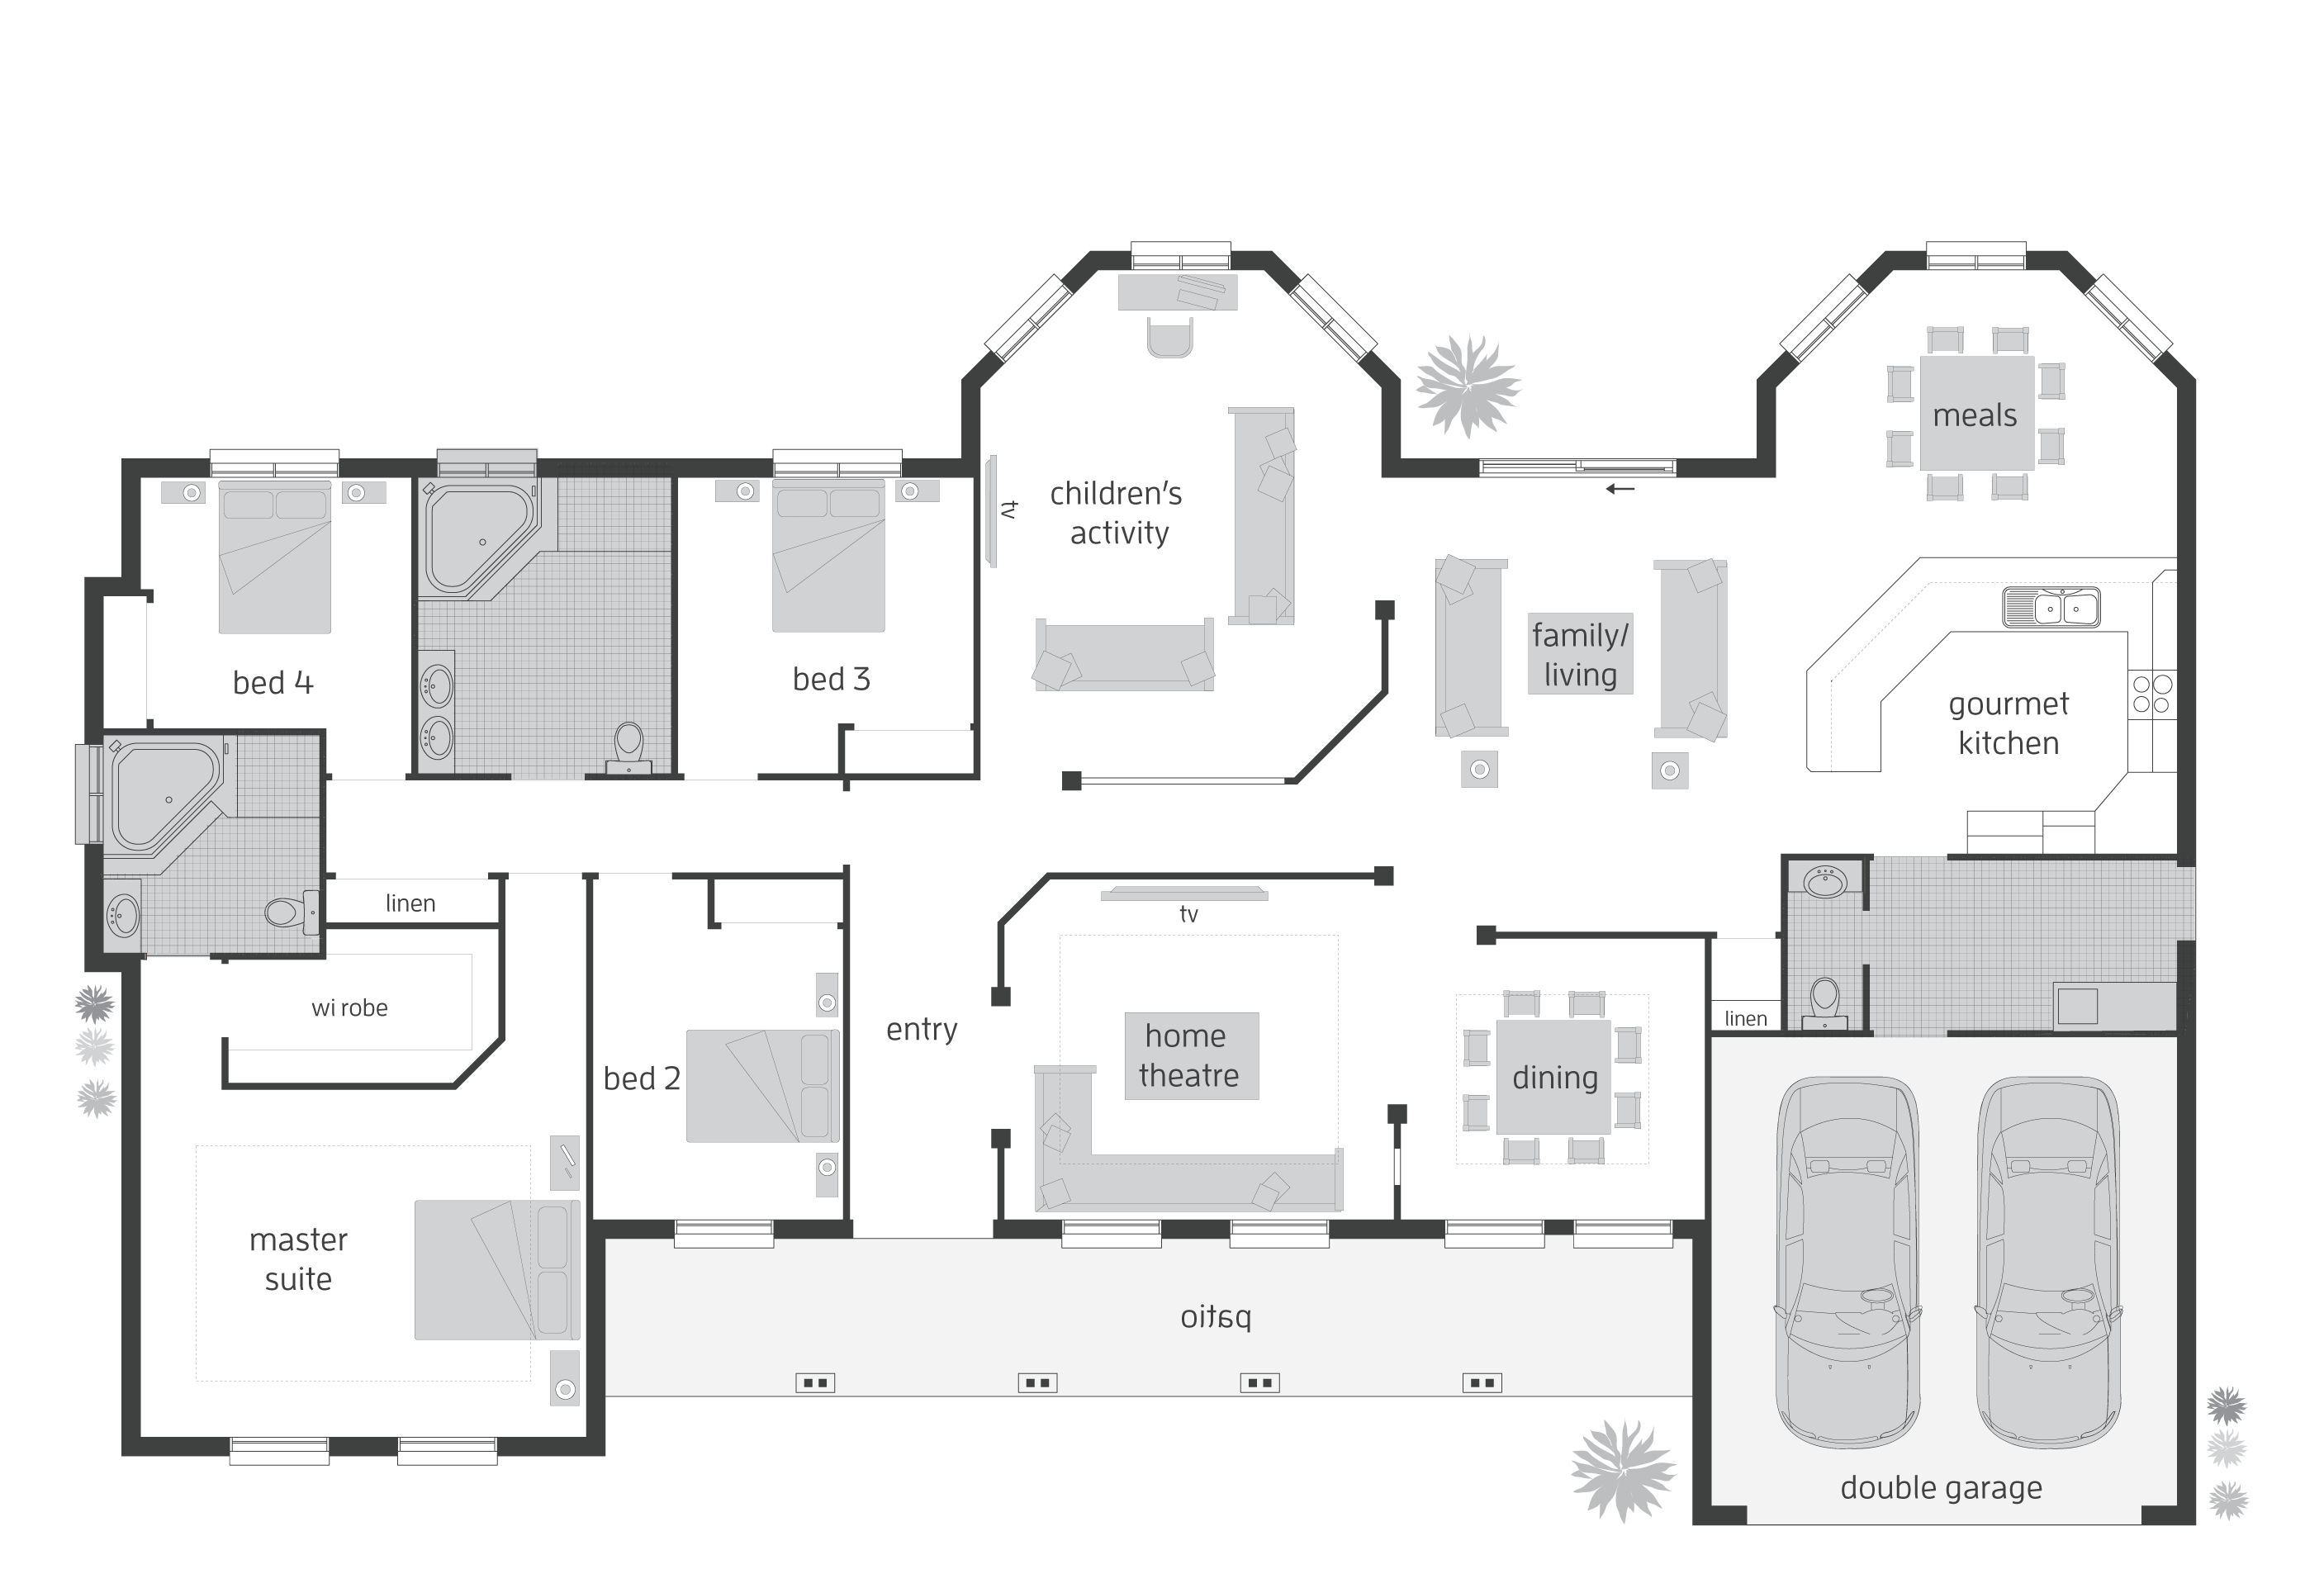 design ideas home house plans australia floor pricing